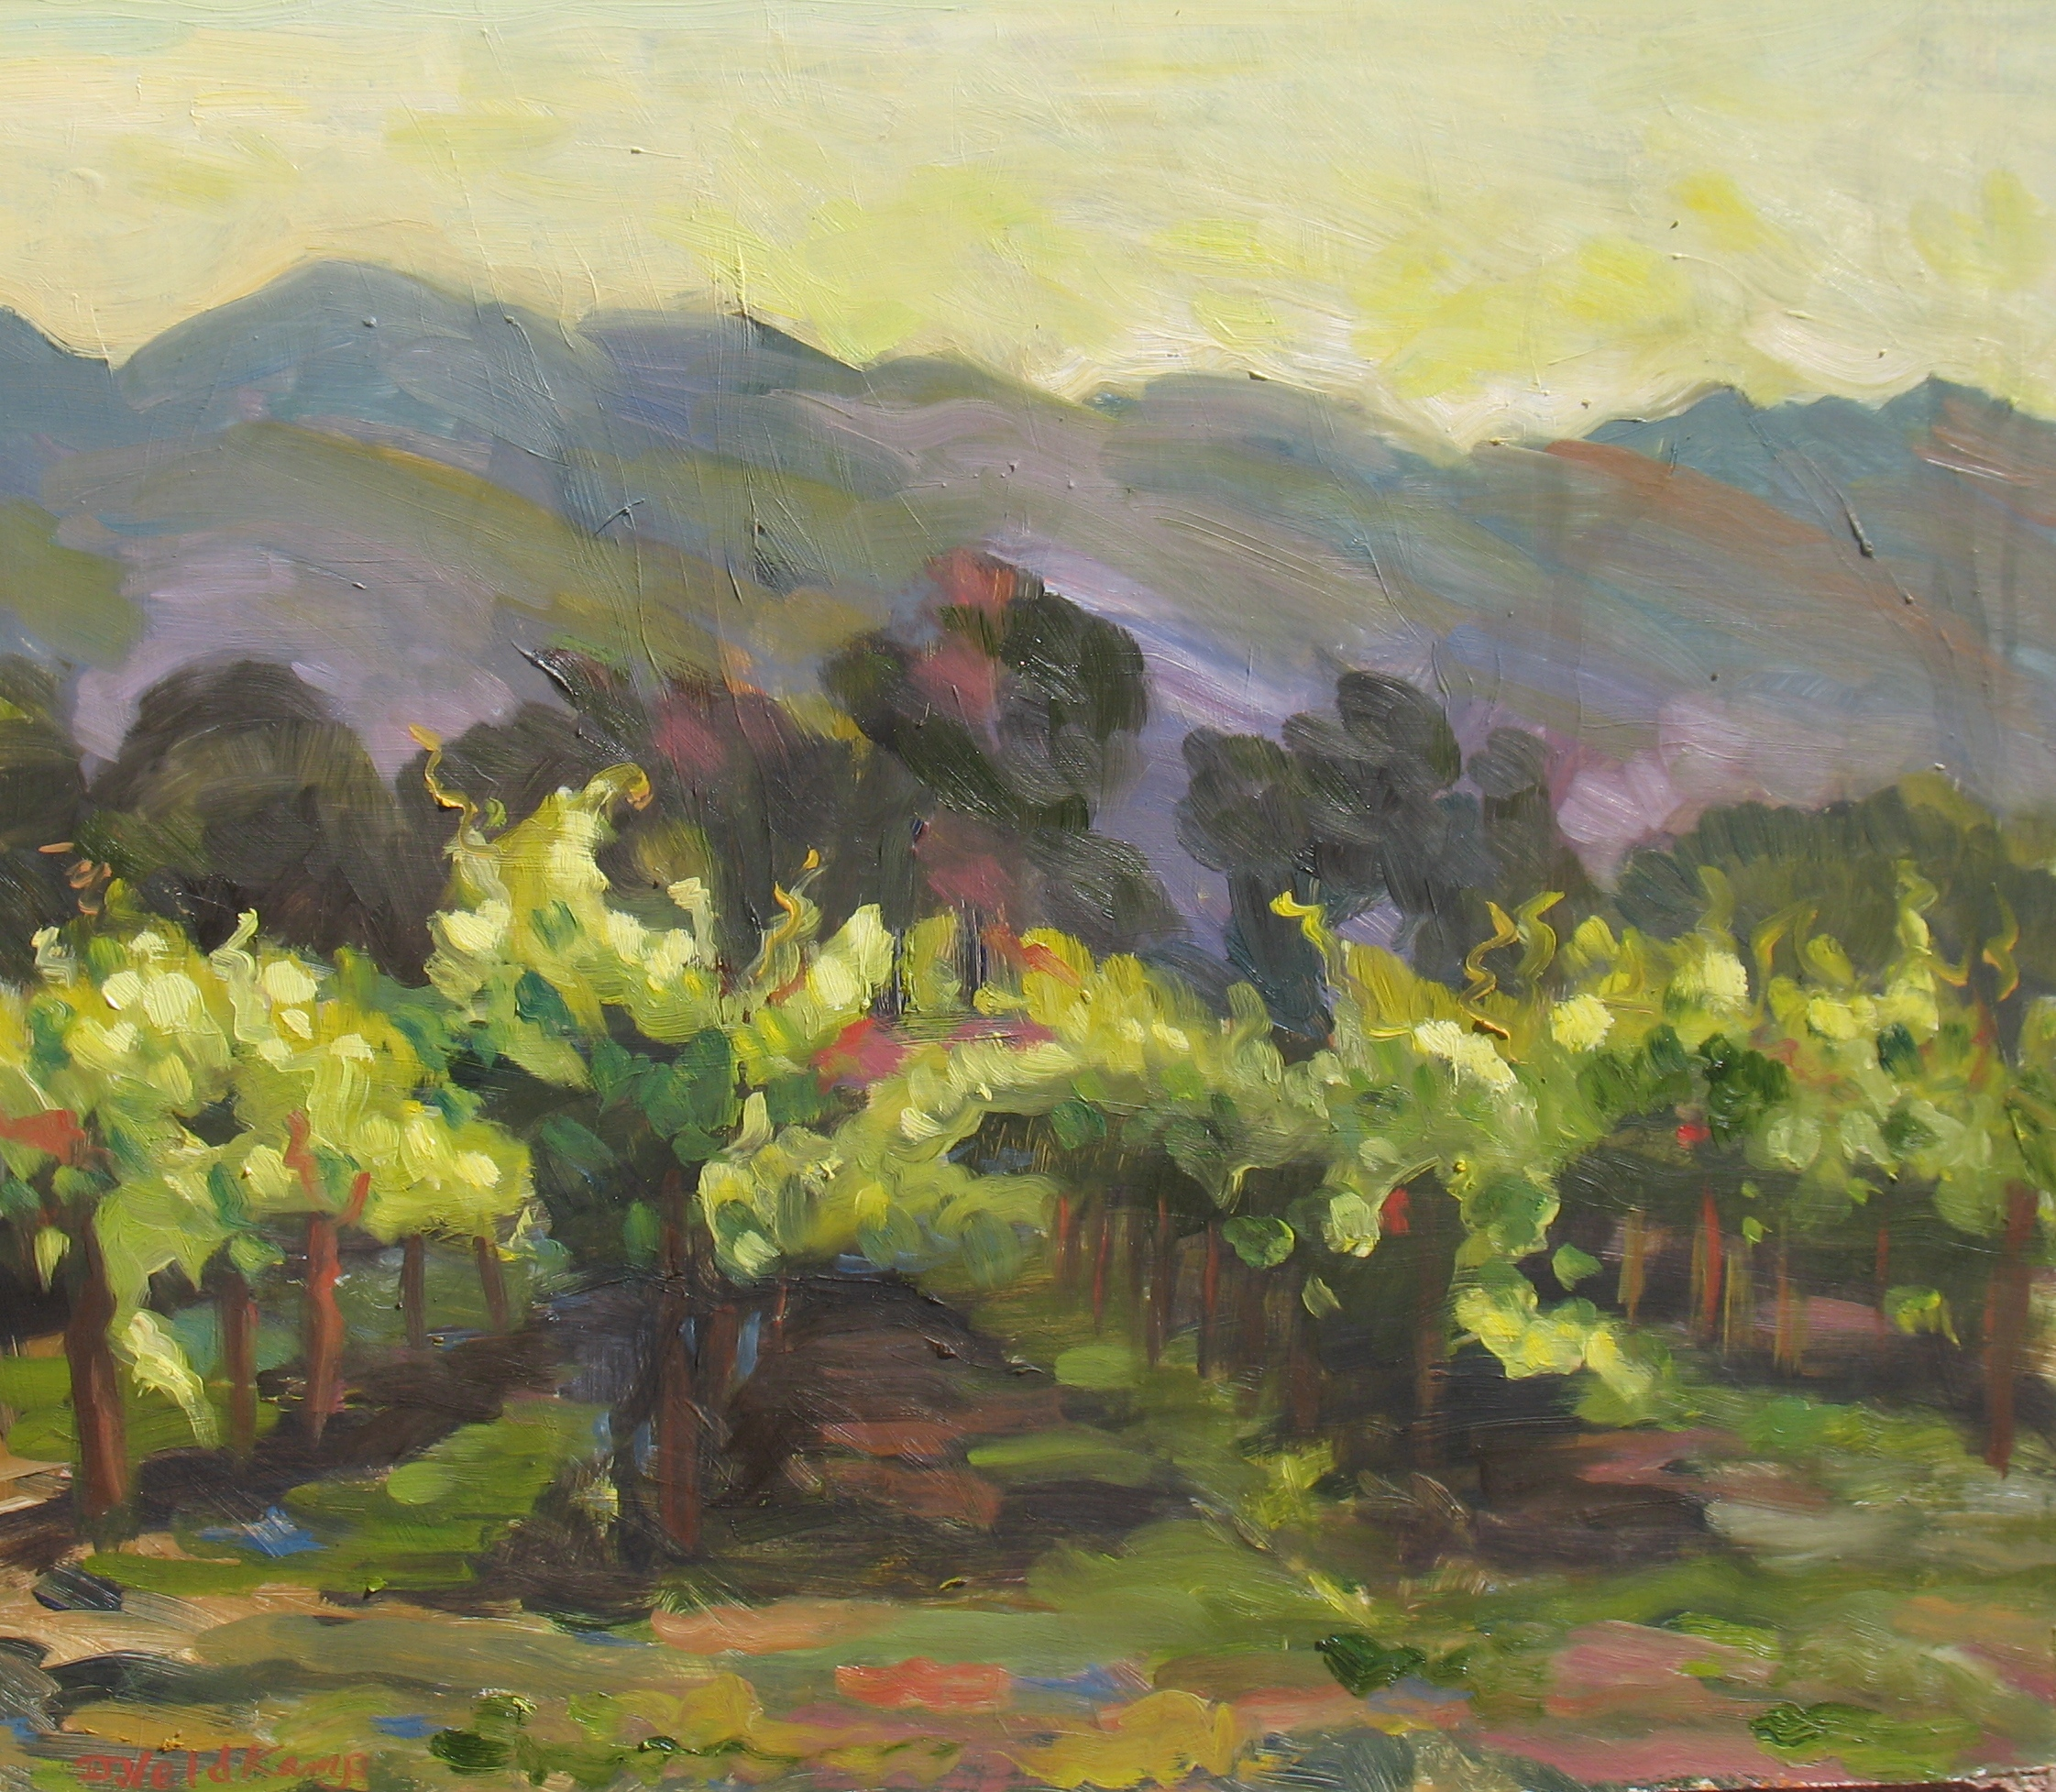 Evening vineyard, 16 x 20 inches, oil on panel - UNAVAILABLE